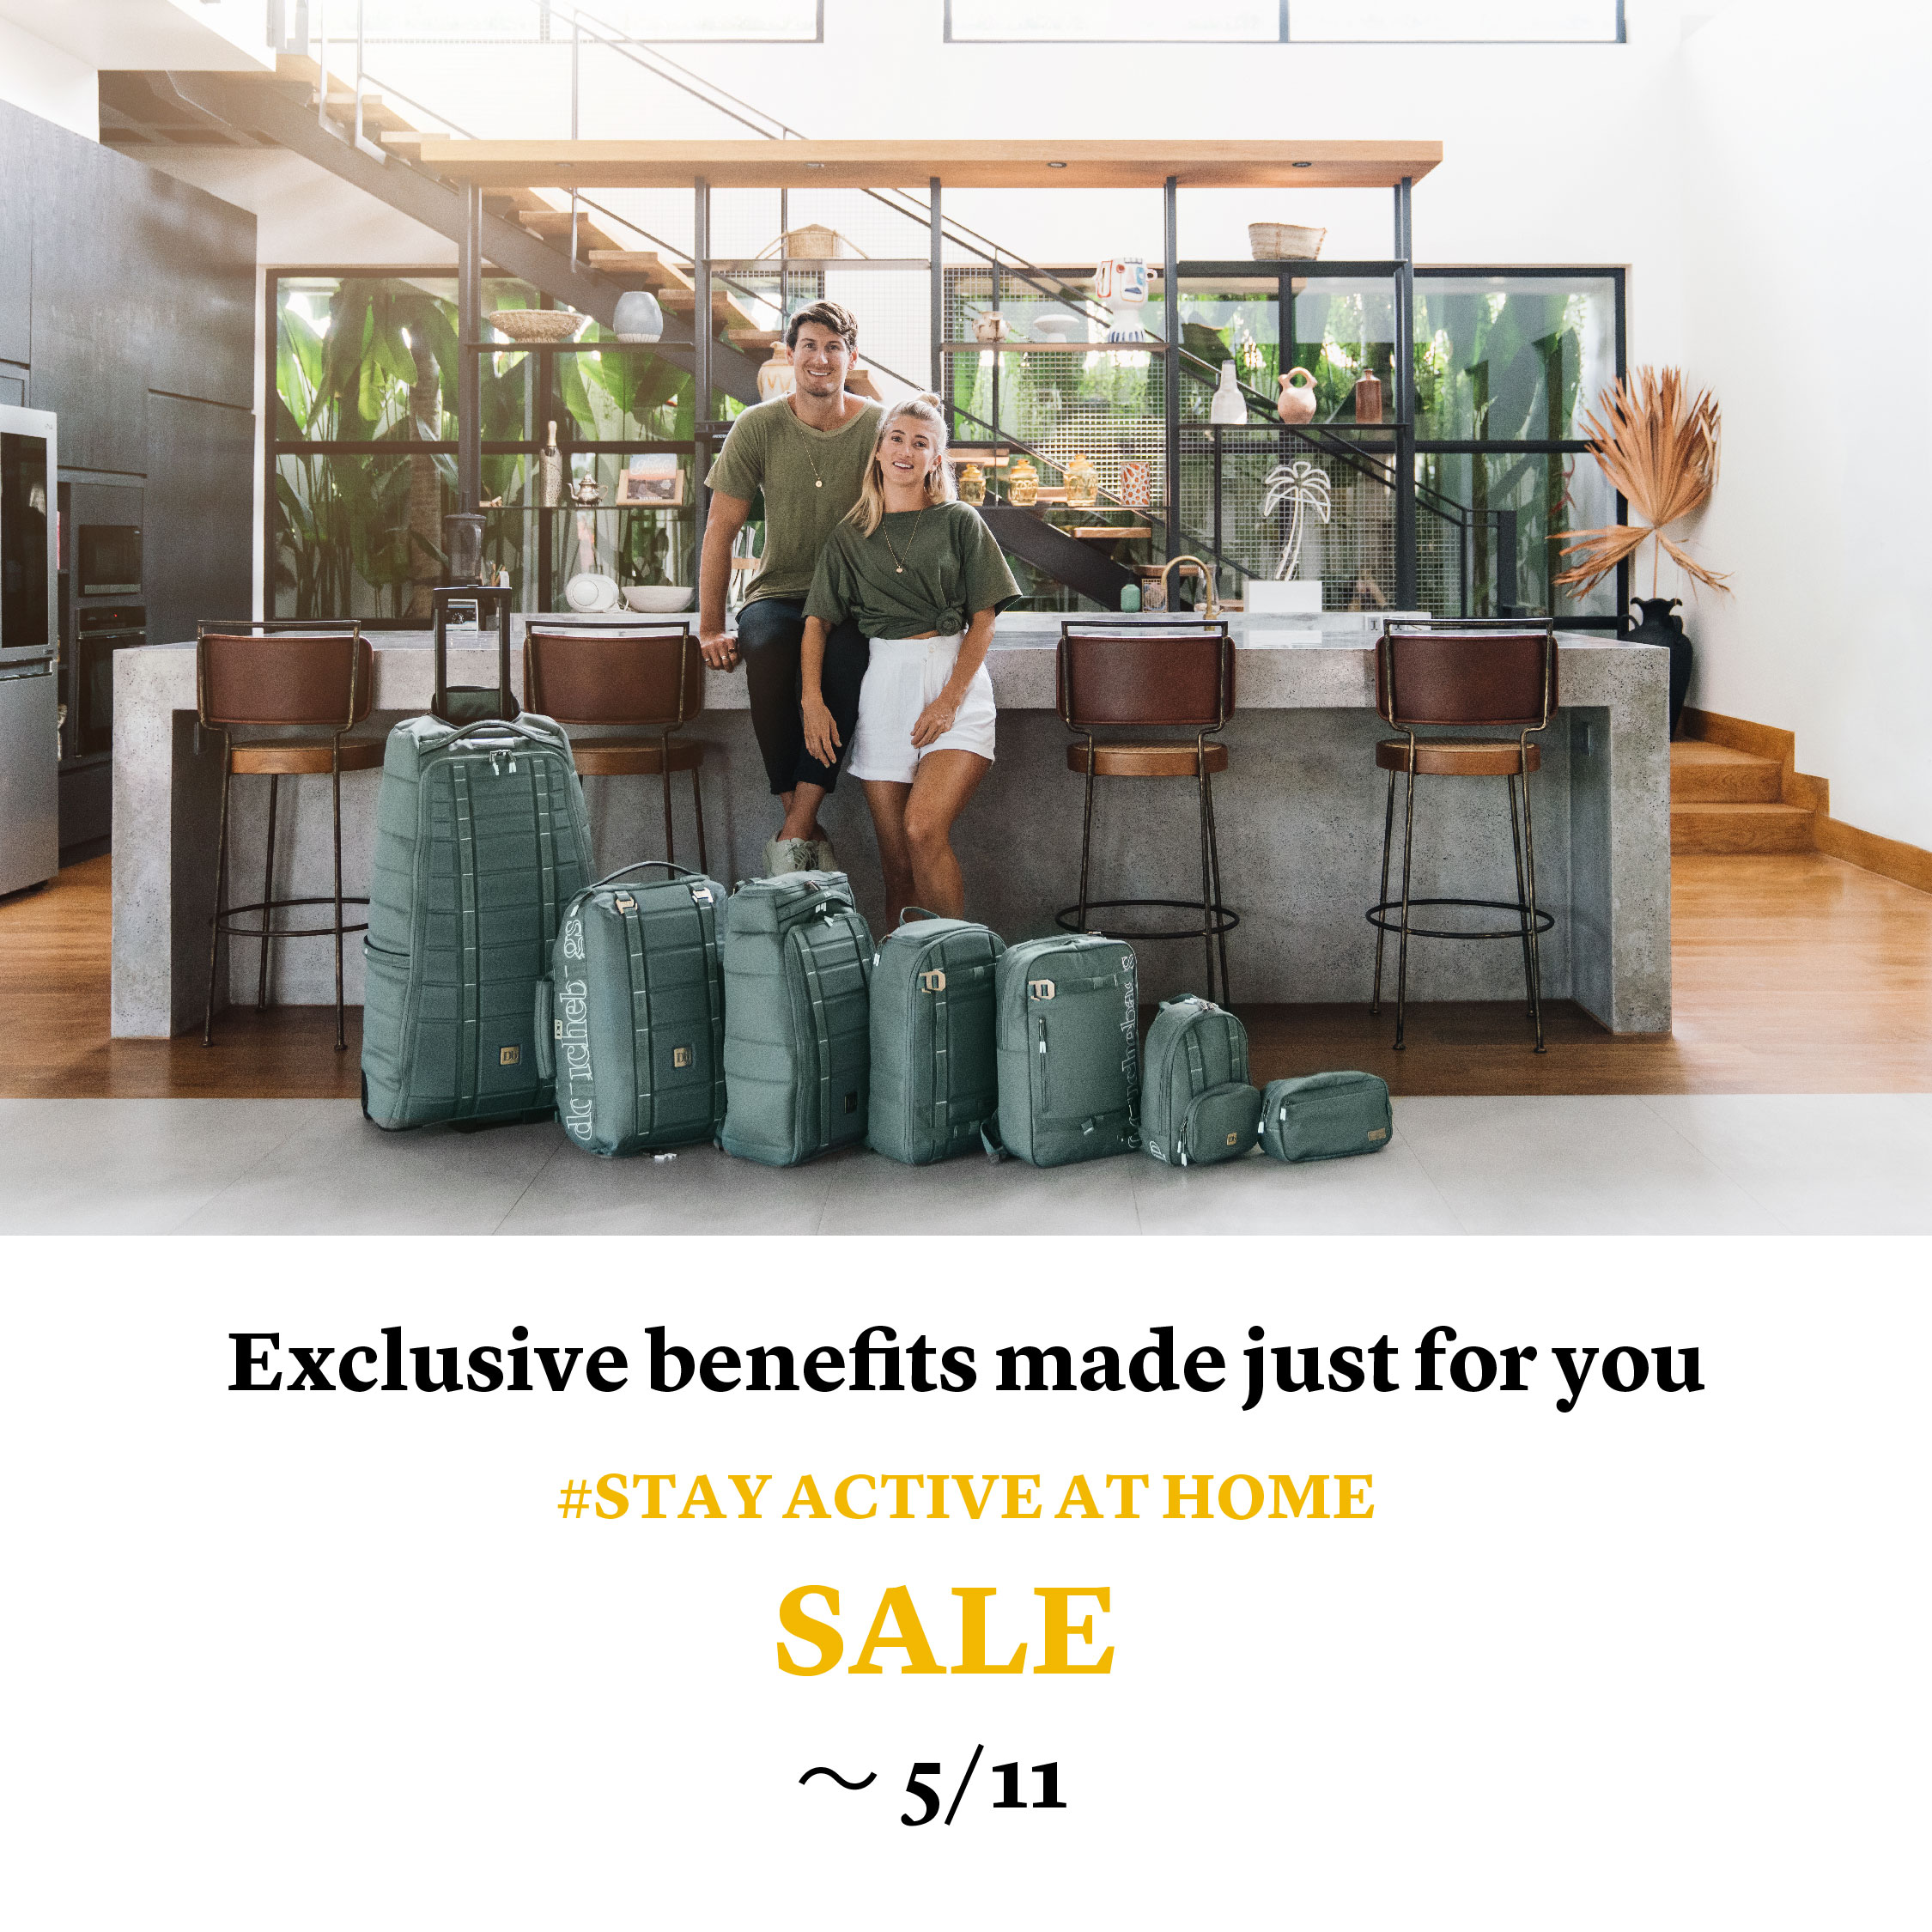 【SALE】# STAY ACTIVE AT HOME